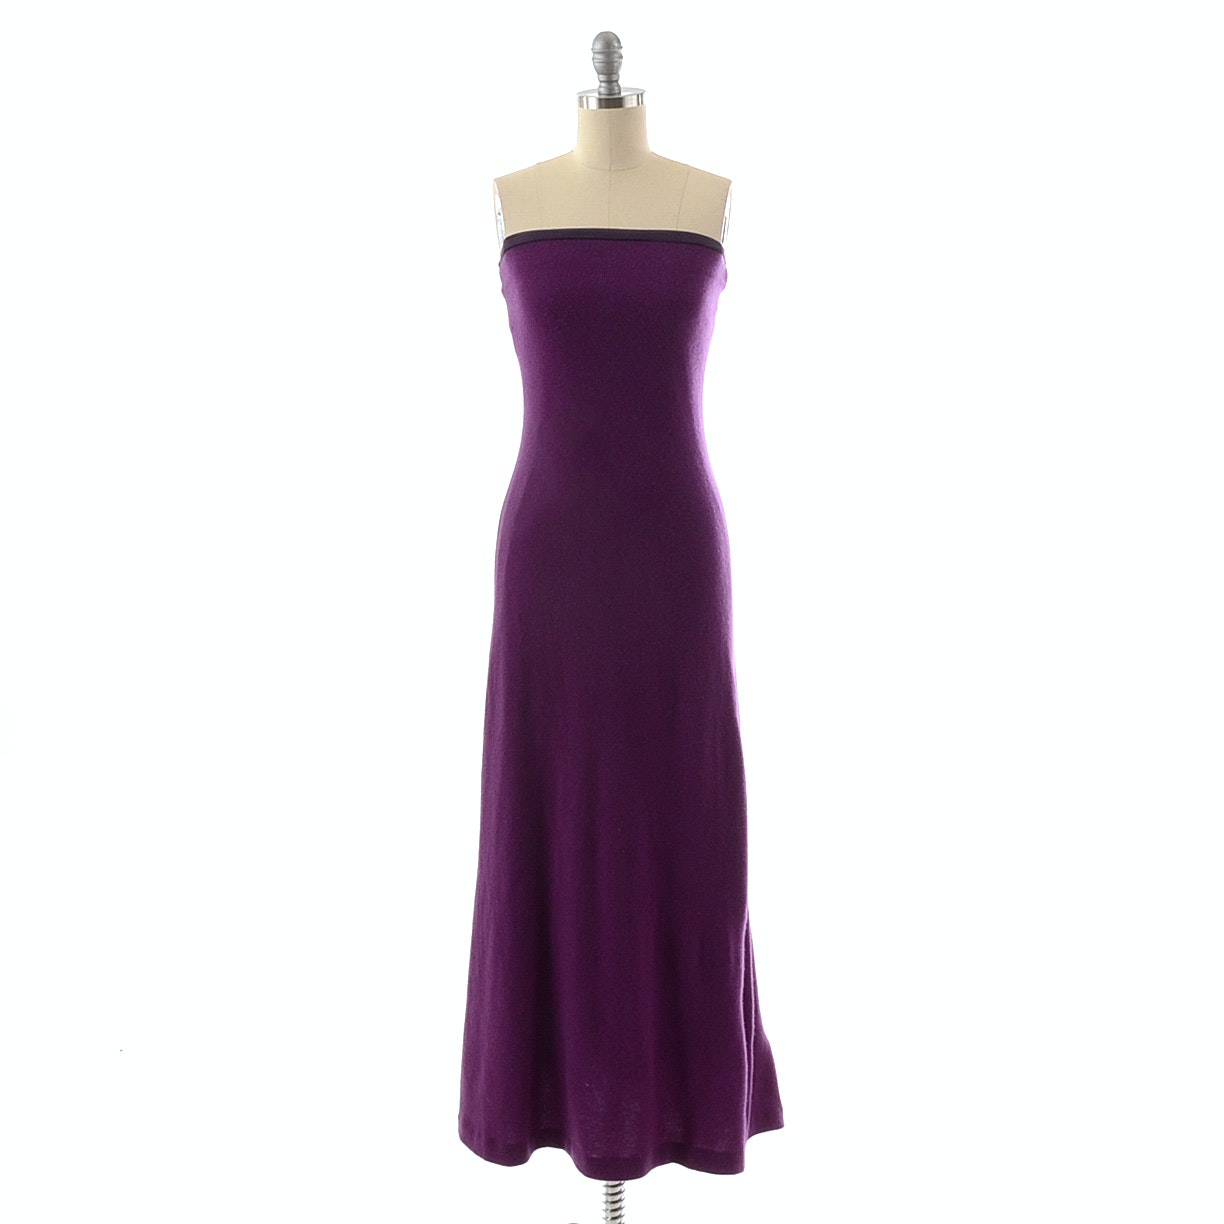 Ralph Lauren Strapless Purple Cashmere Knit Evening Dress